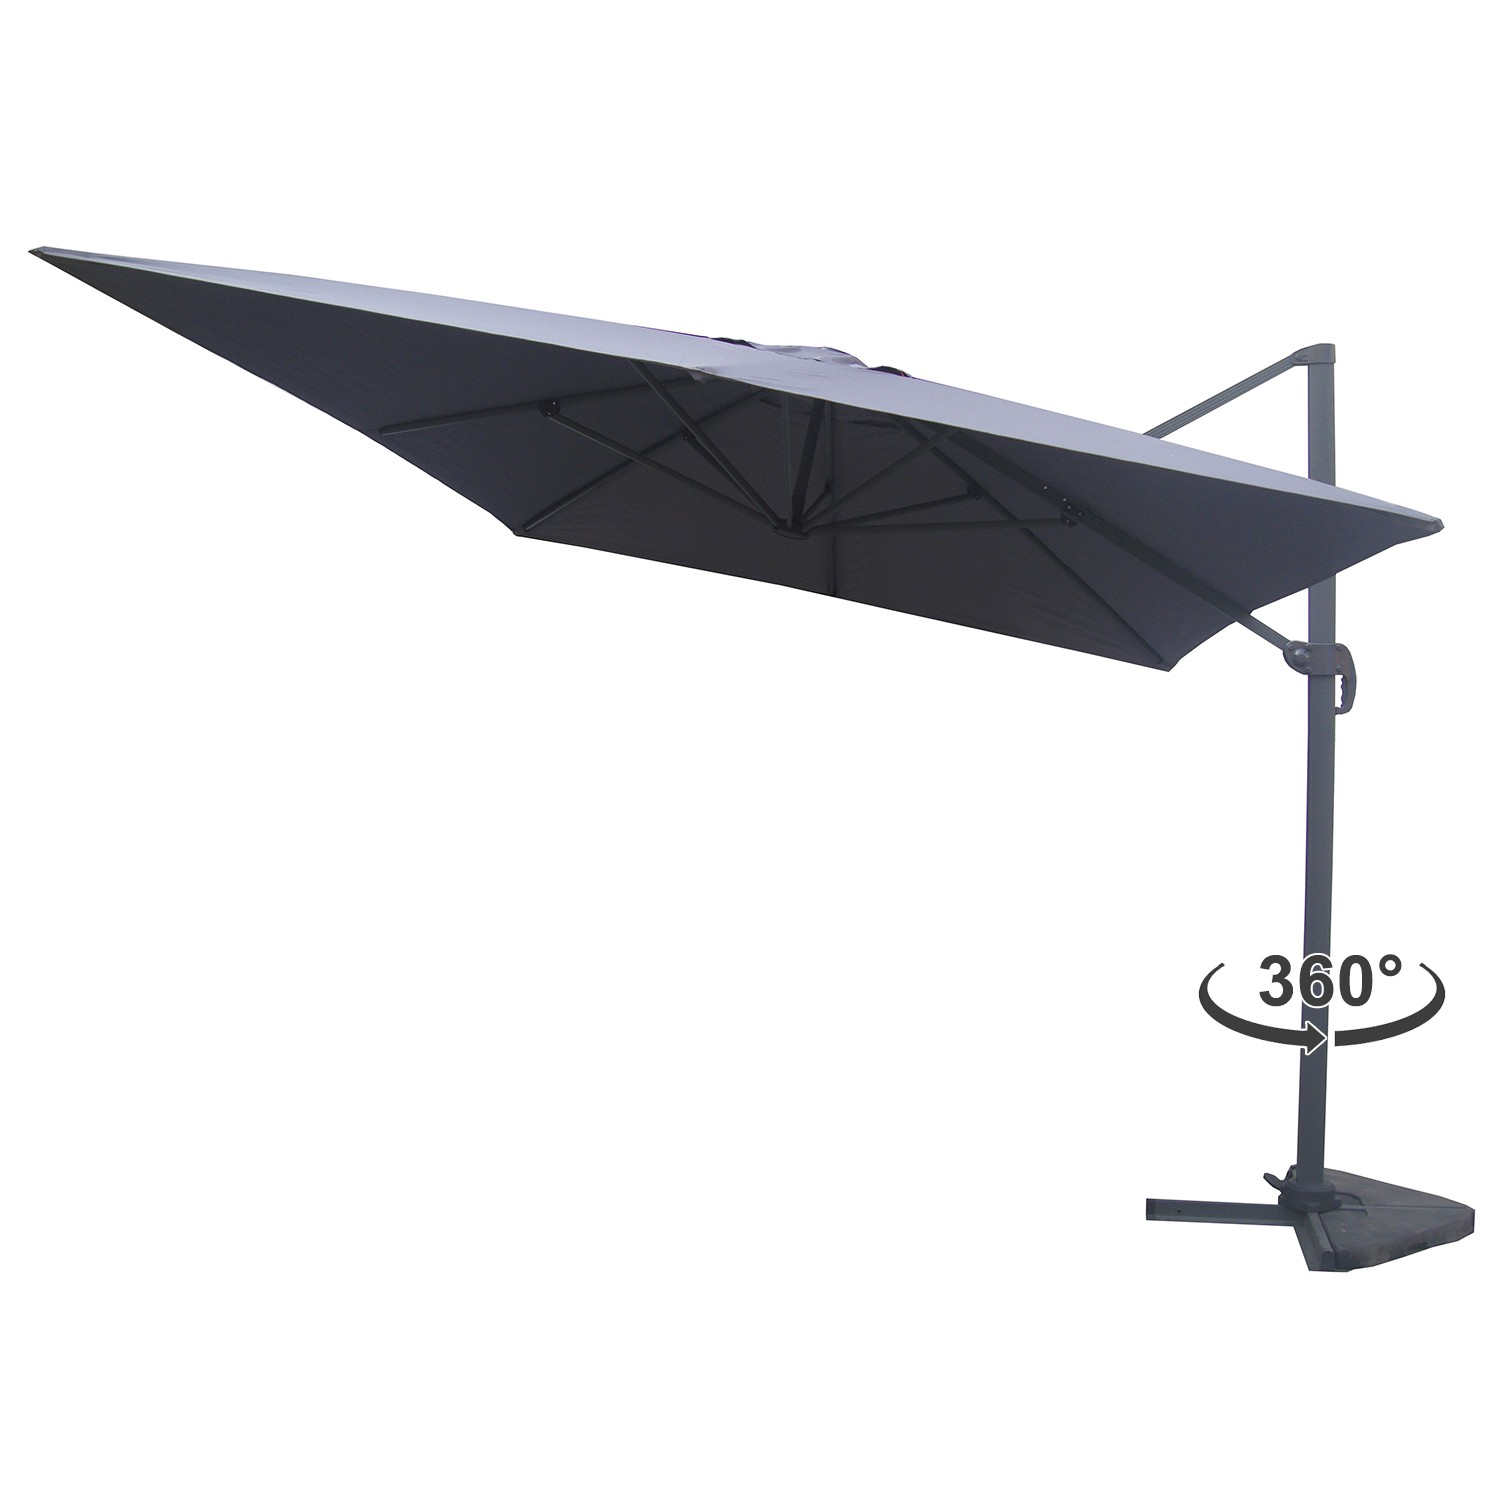 strand gris parasol d port rectangulaire 3x4m rotatif. Black Bedroom Furniture Sets. Home Design Ideas